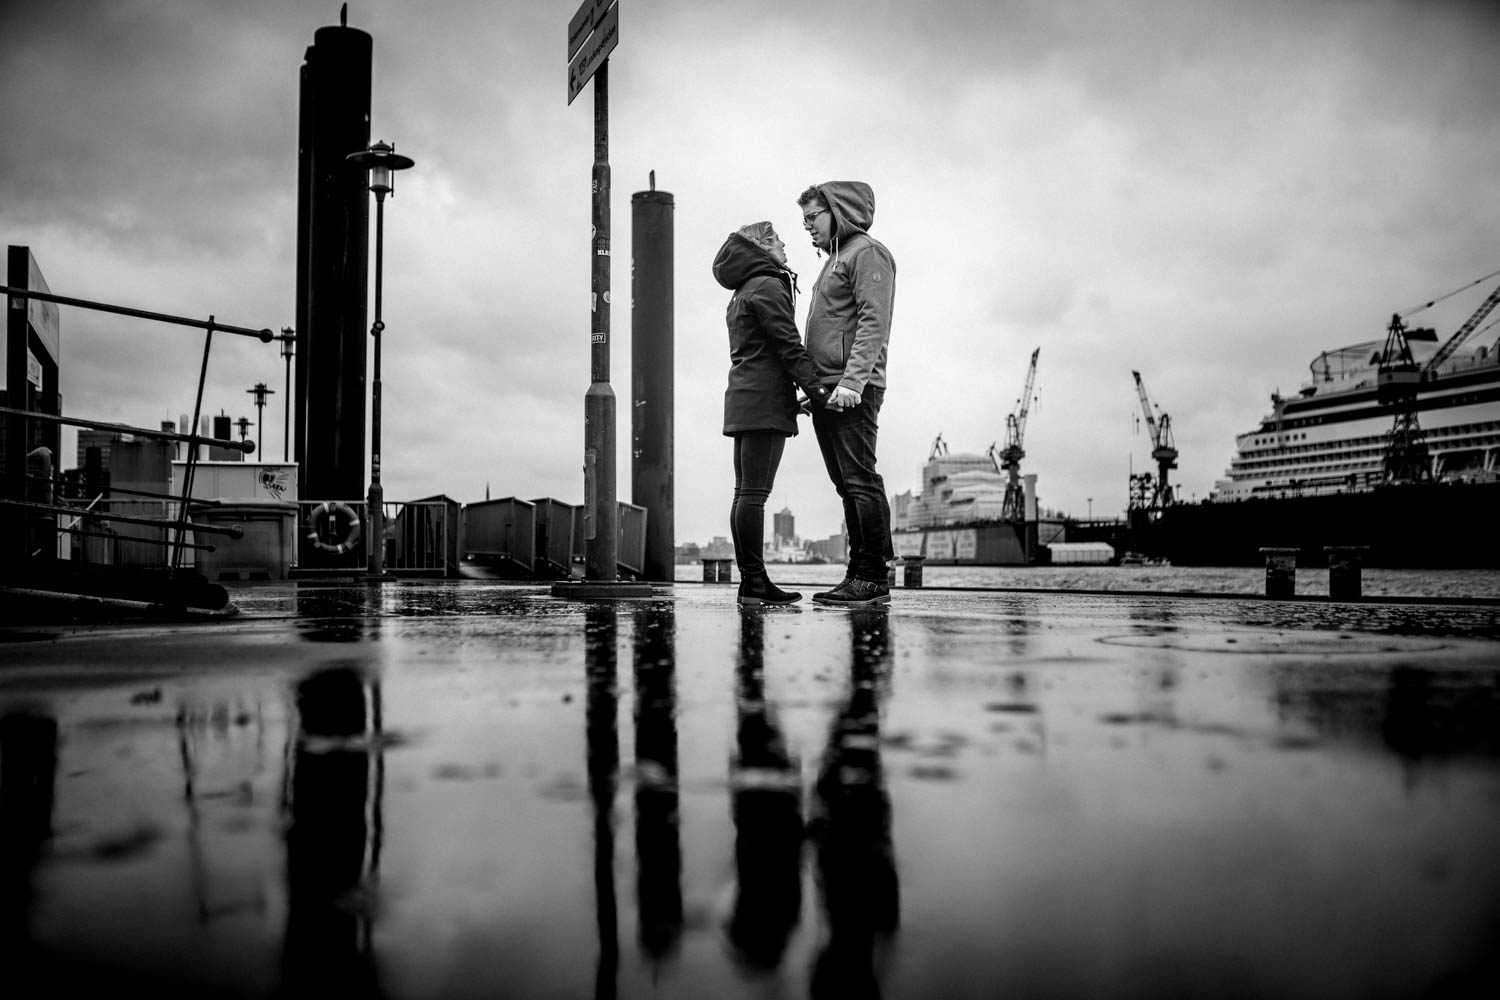 Engagementshooting, Hochzeitsfieber by Photo-Schomburg, Pärchenshoot, Hamburg, Elbe, Hamburger Hafen, Hochzeitsfotograf, Wedding, Coupleshoot-5